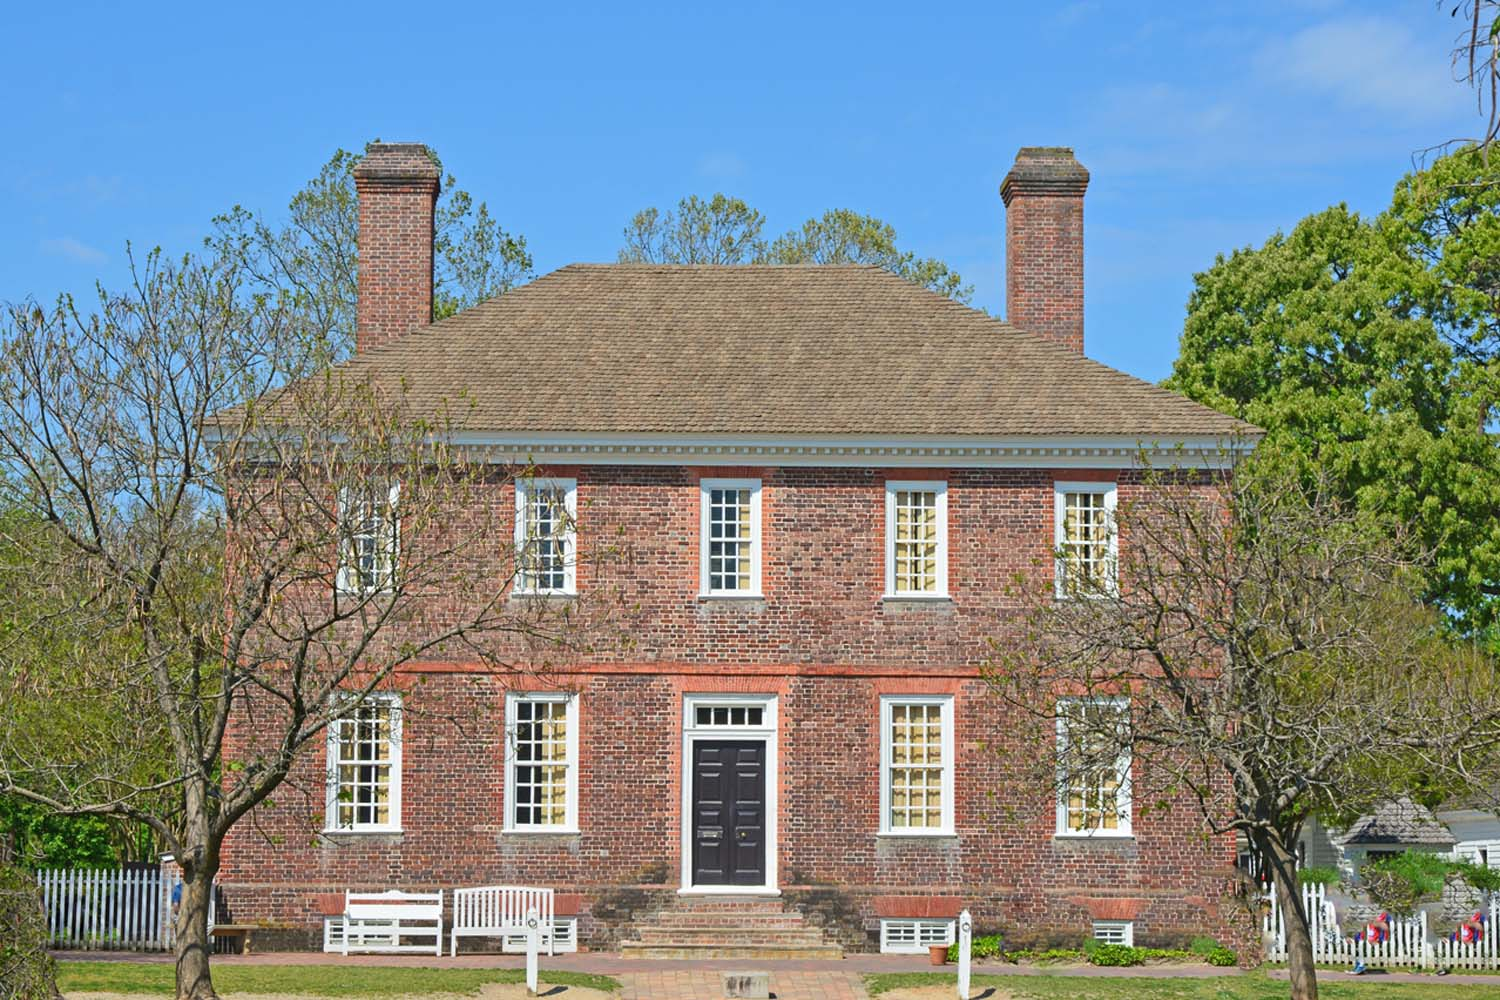 George Wythe House an original building